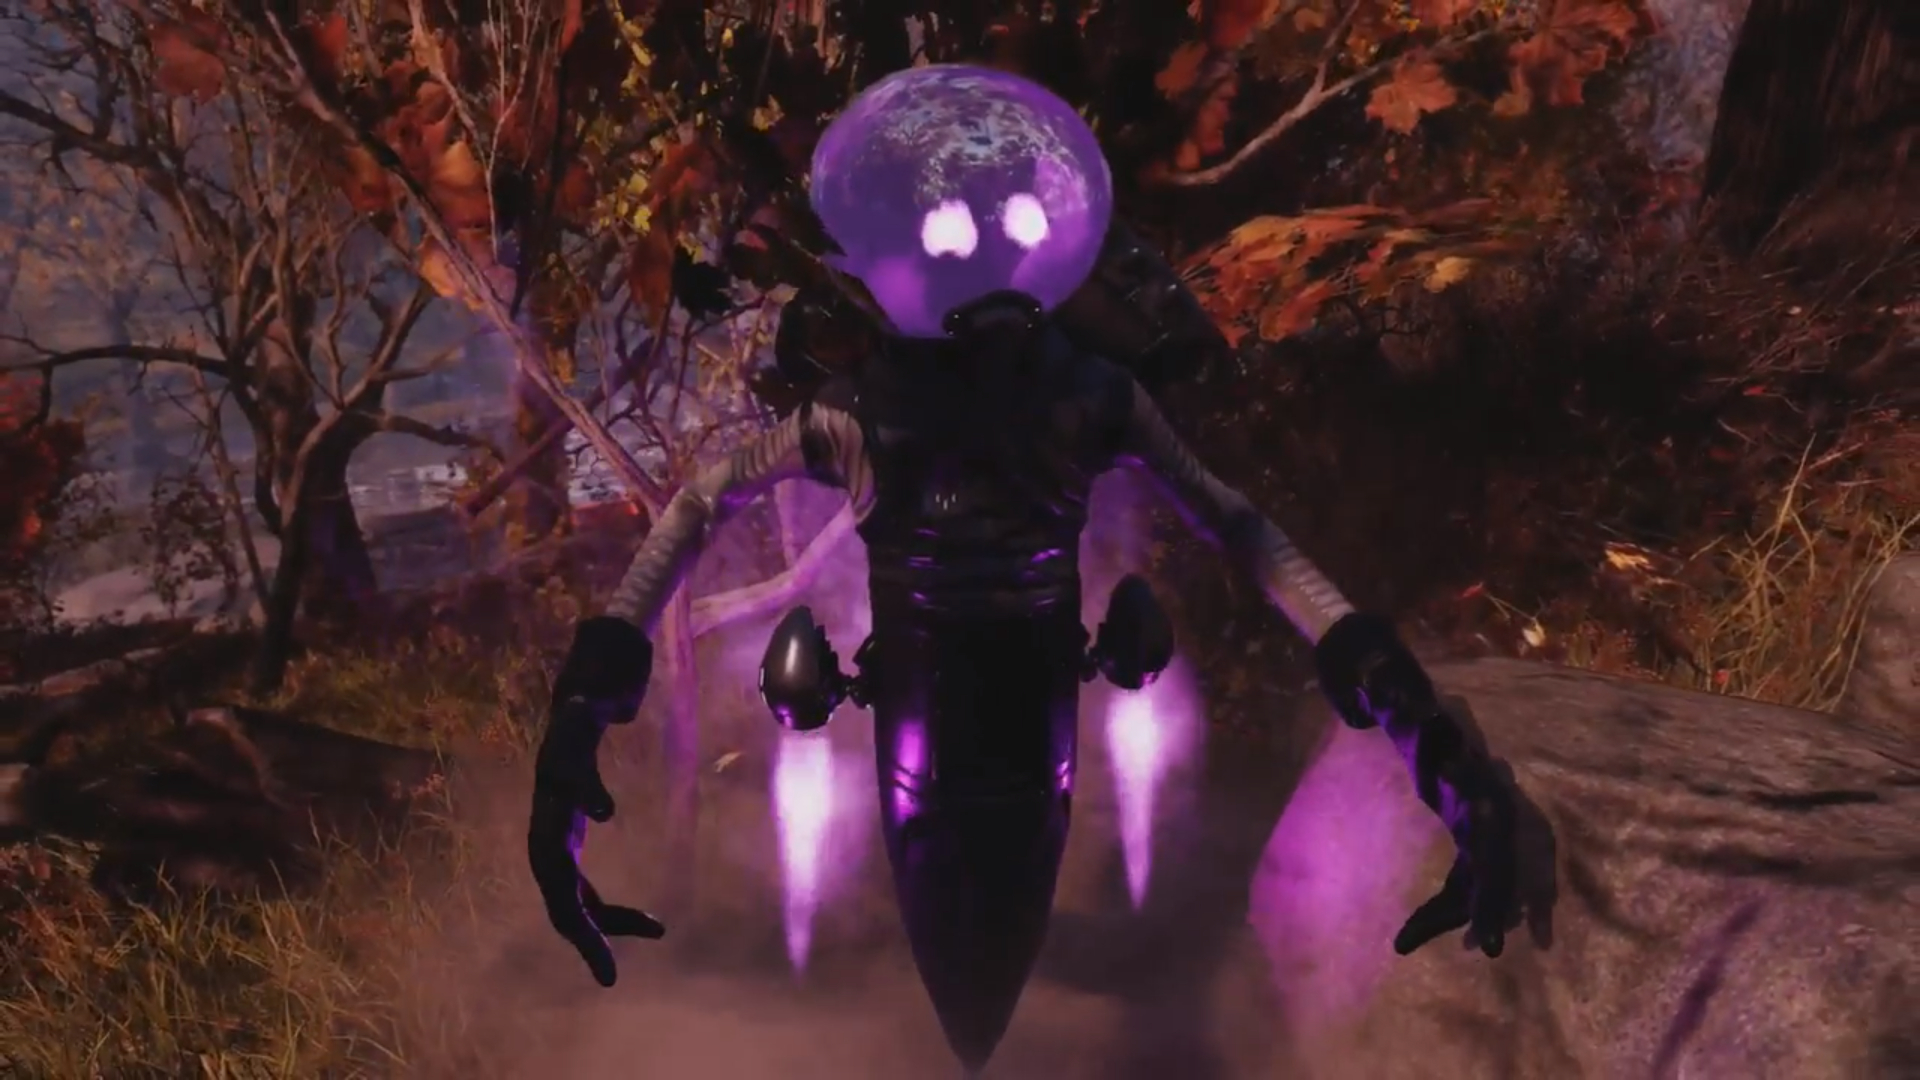 Flatwoods monster | Fallout Wiki | FANDOM powered by Wikia